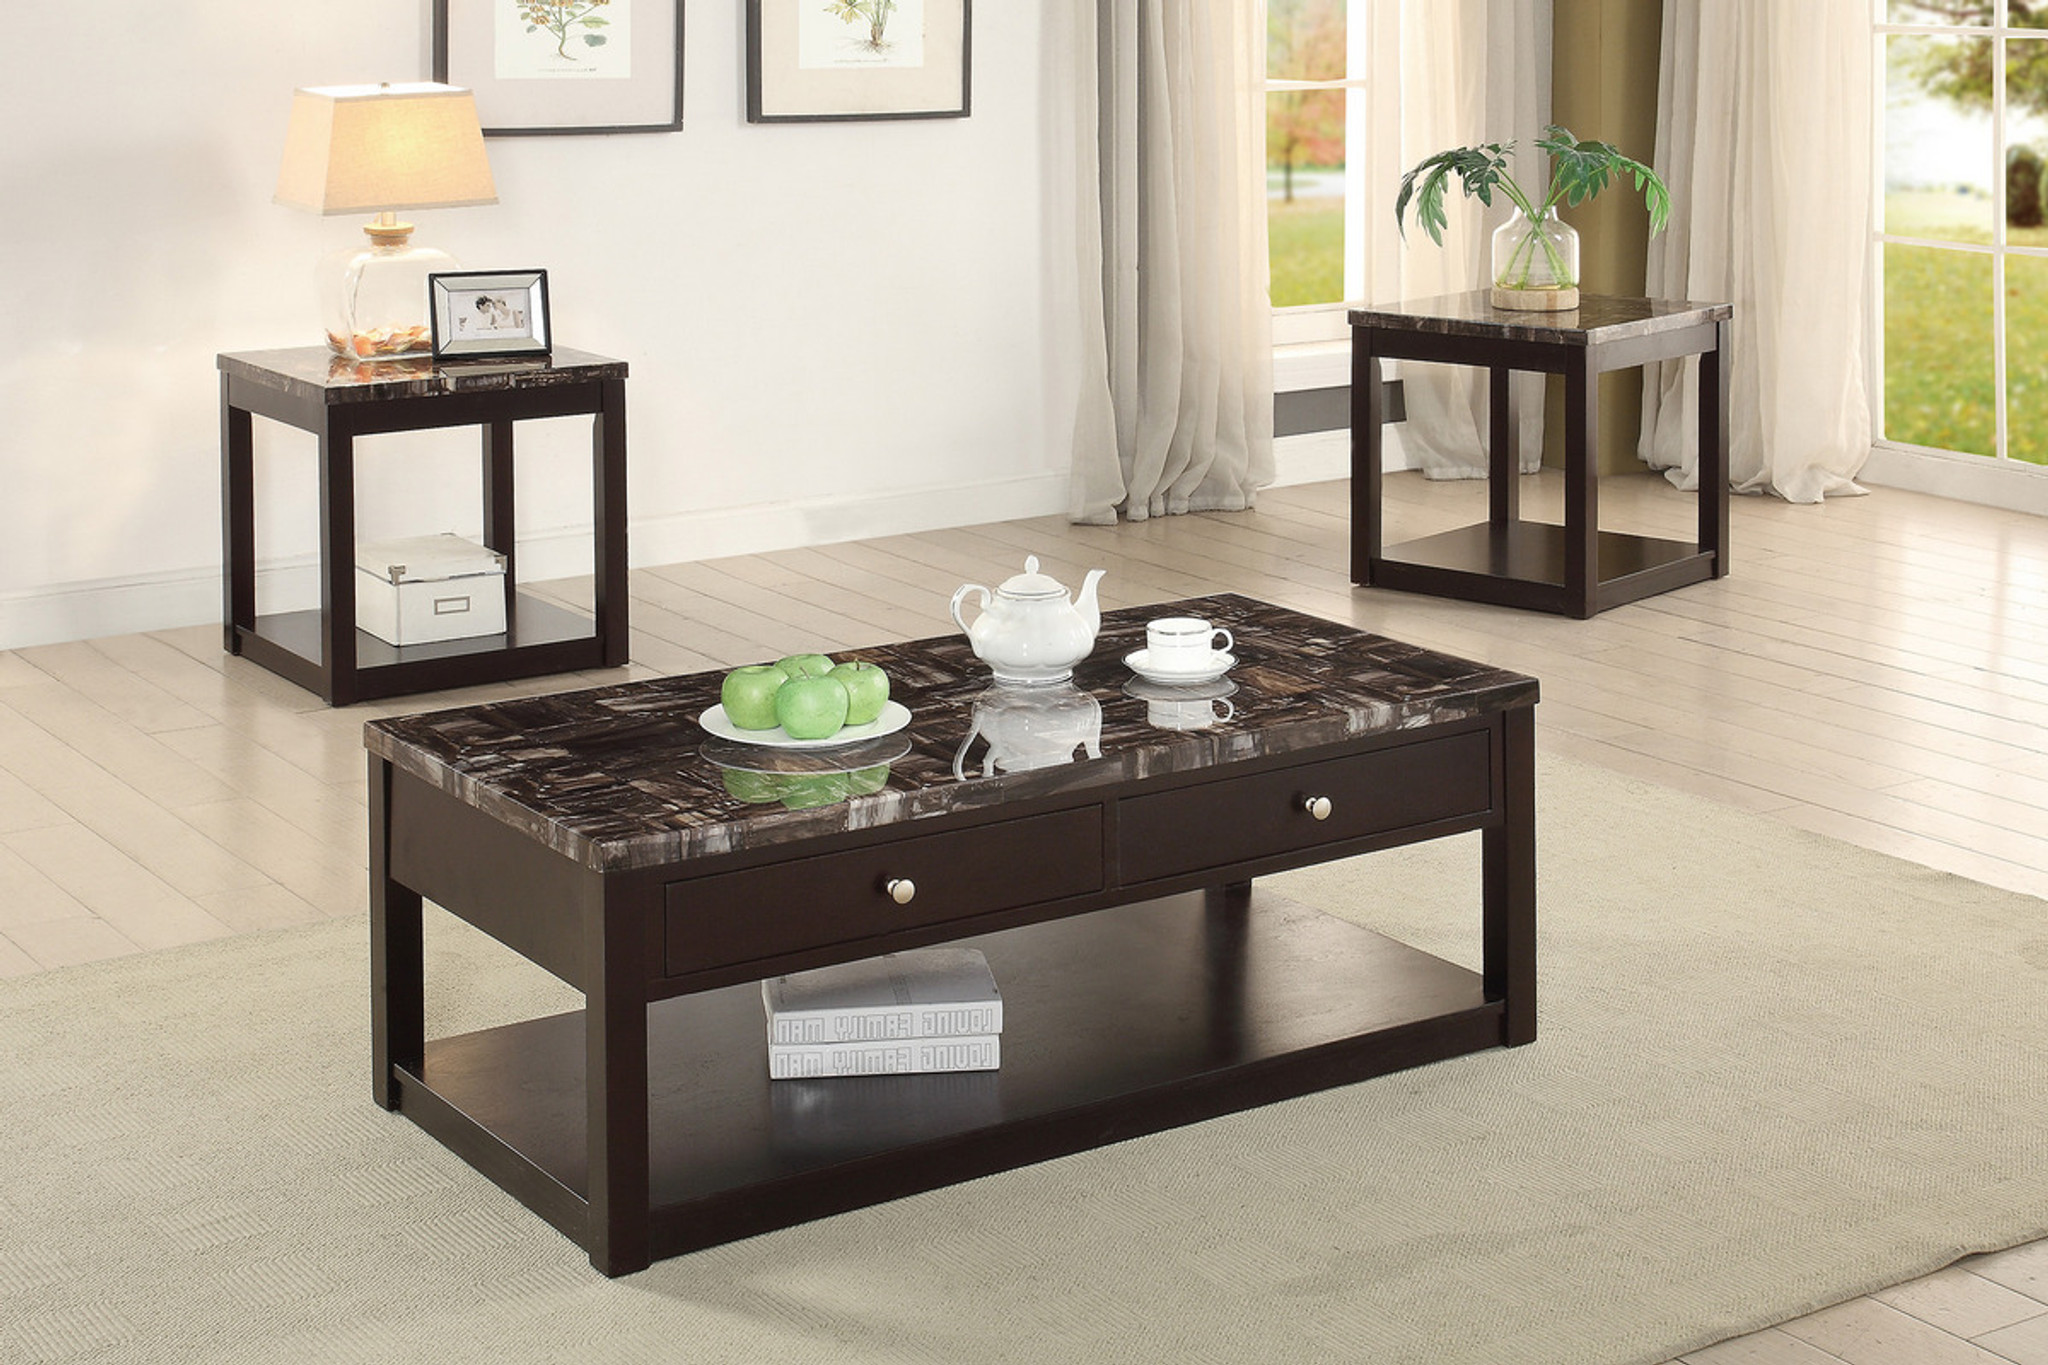 Poundex Coffee Table.3pcs Marble Finish Coffee Table Set